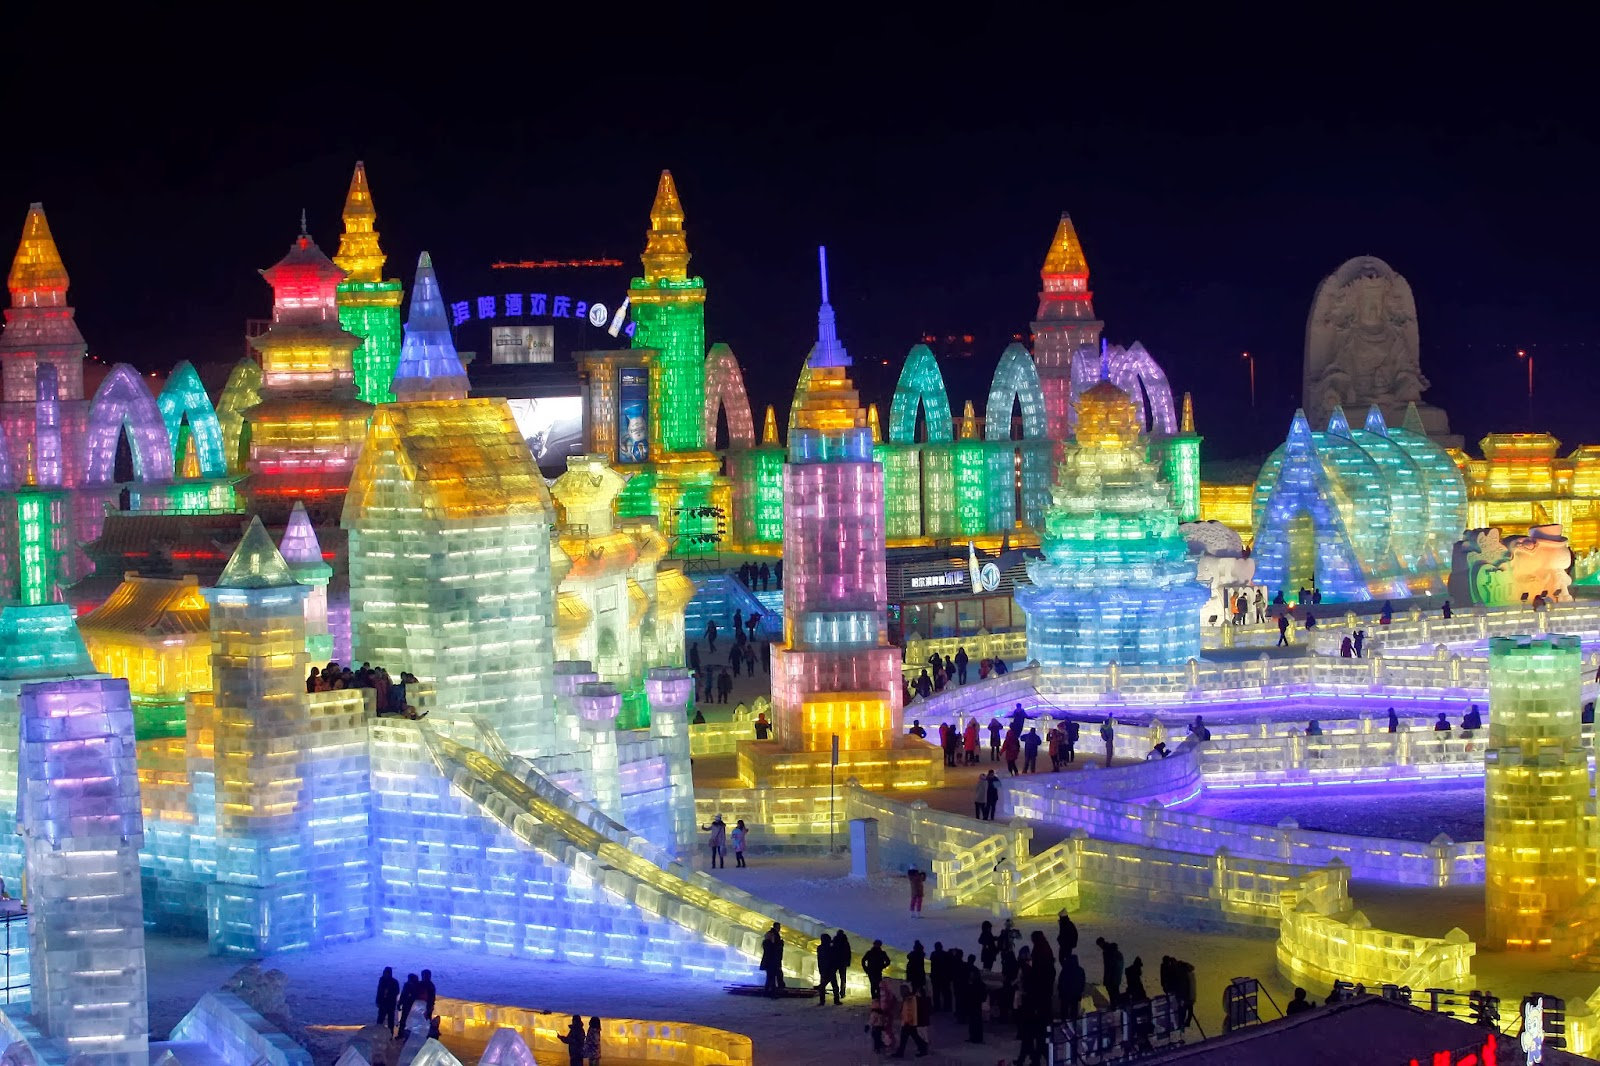 Images Archival Store Harbin International Ice And Snow